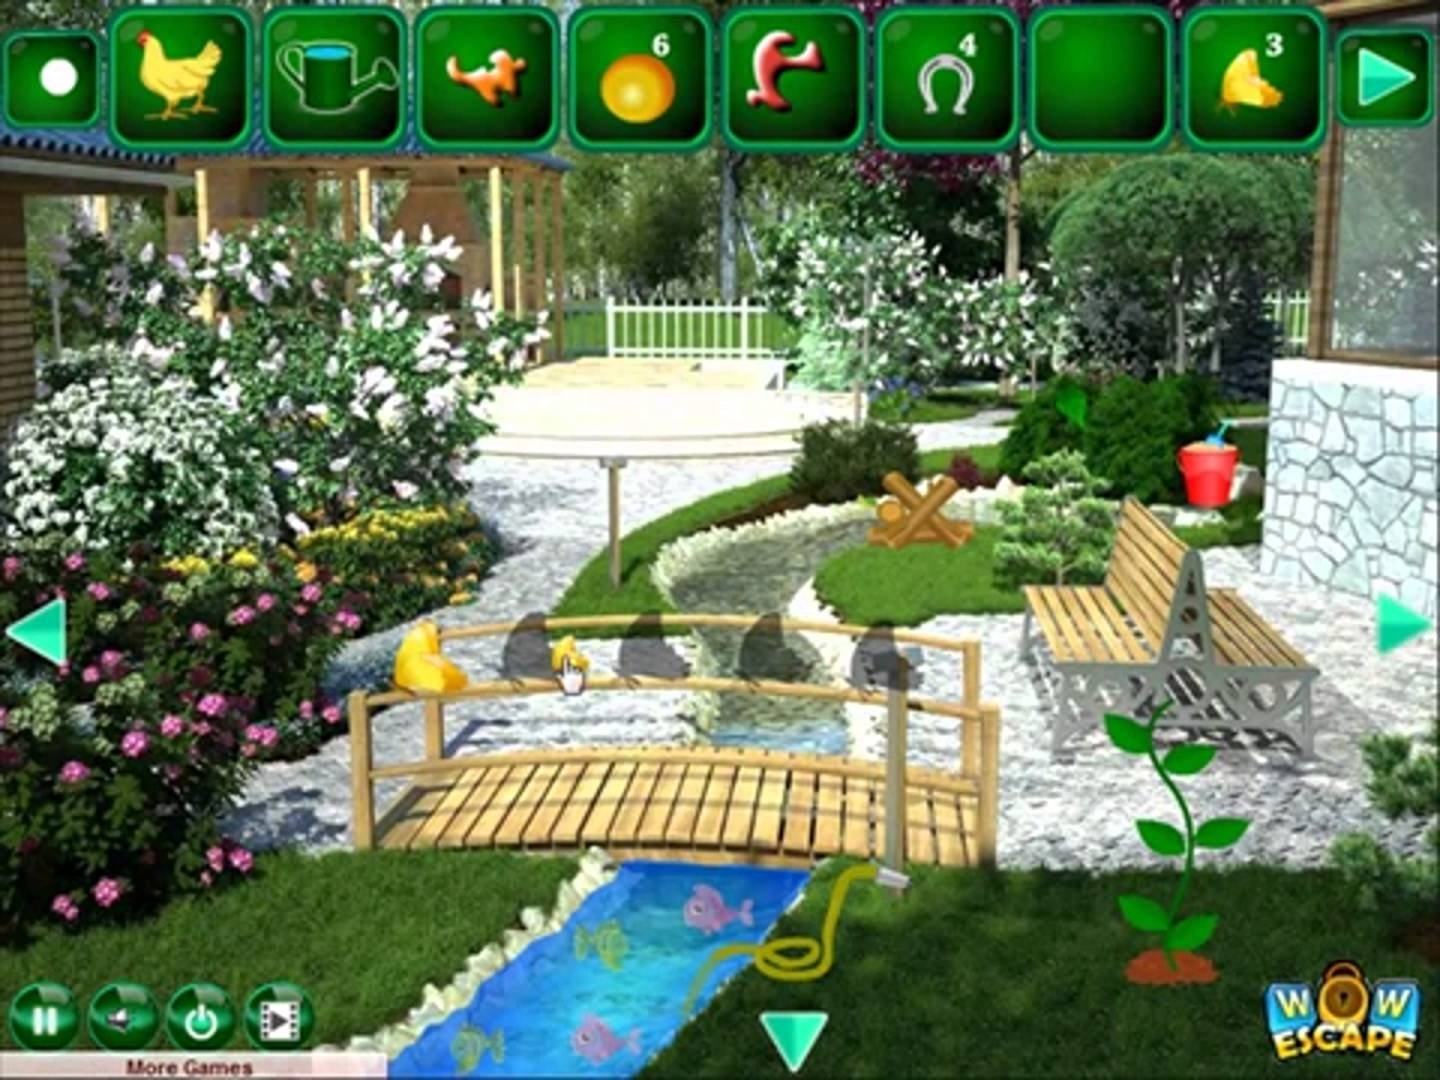 Wow Backyard Escape Video Walkthrough - Youtube inside Wow Backyard Garden Escape Walkthrough